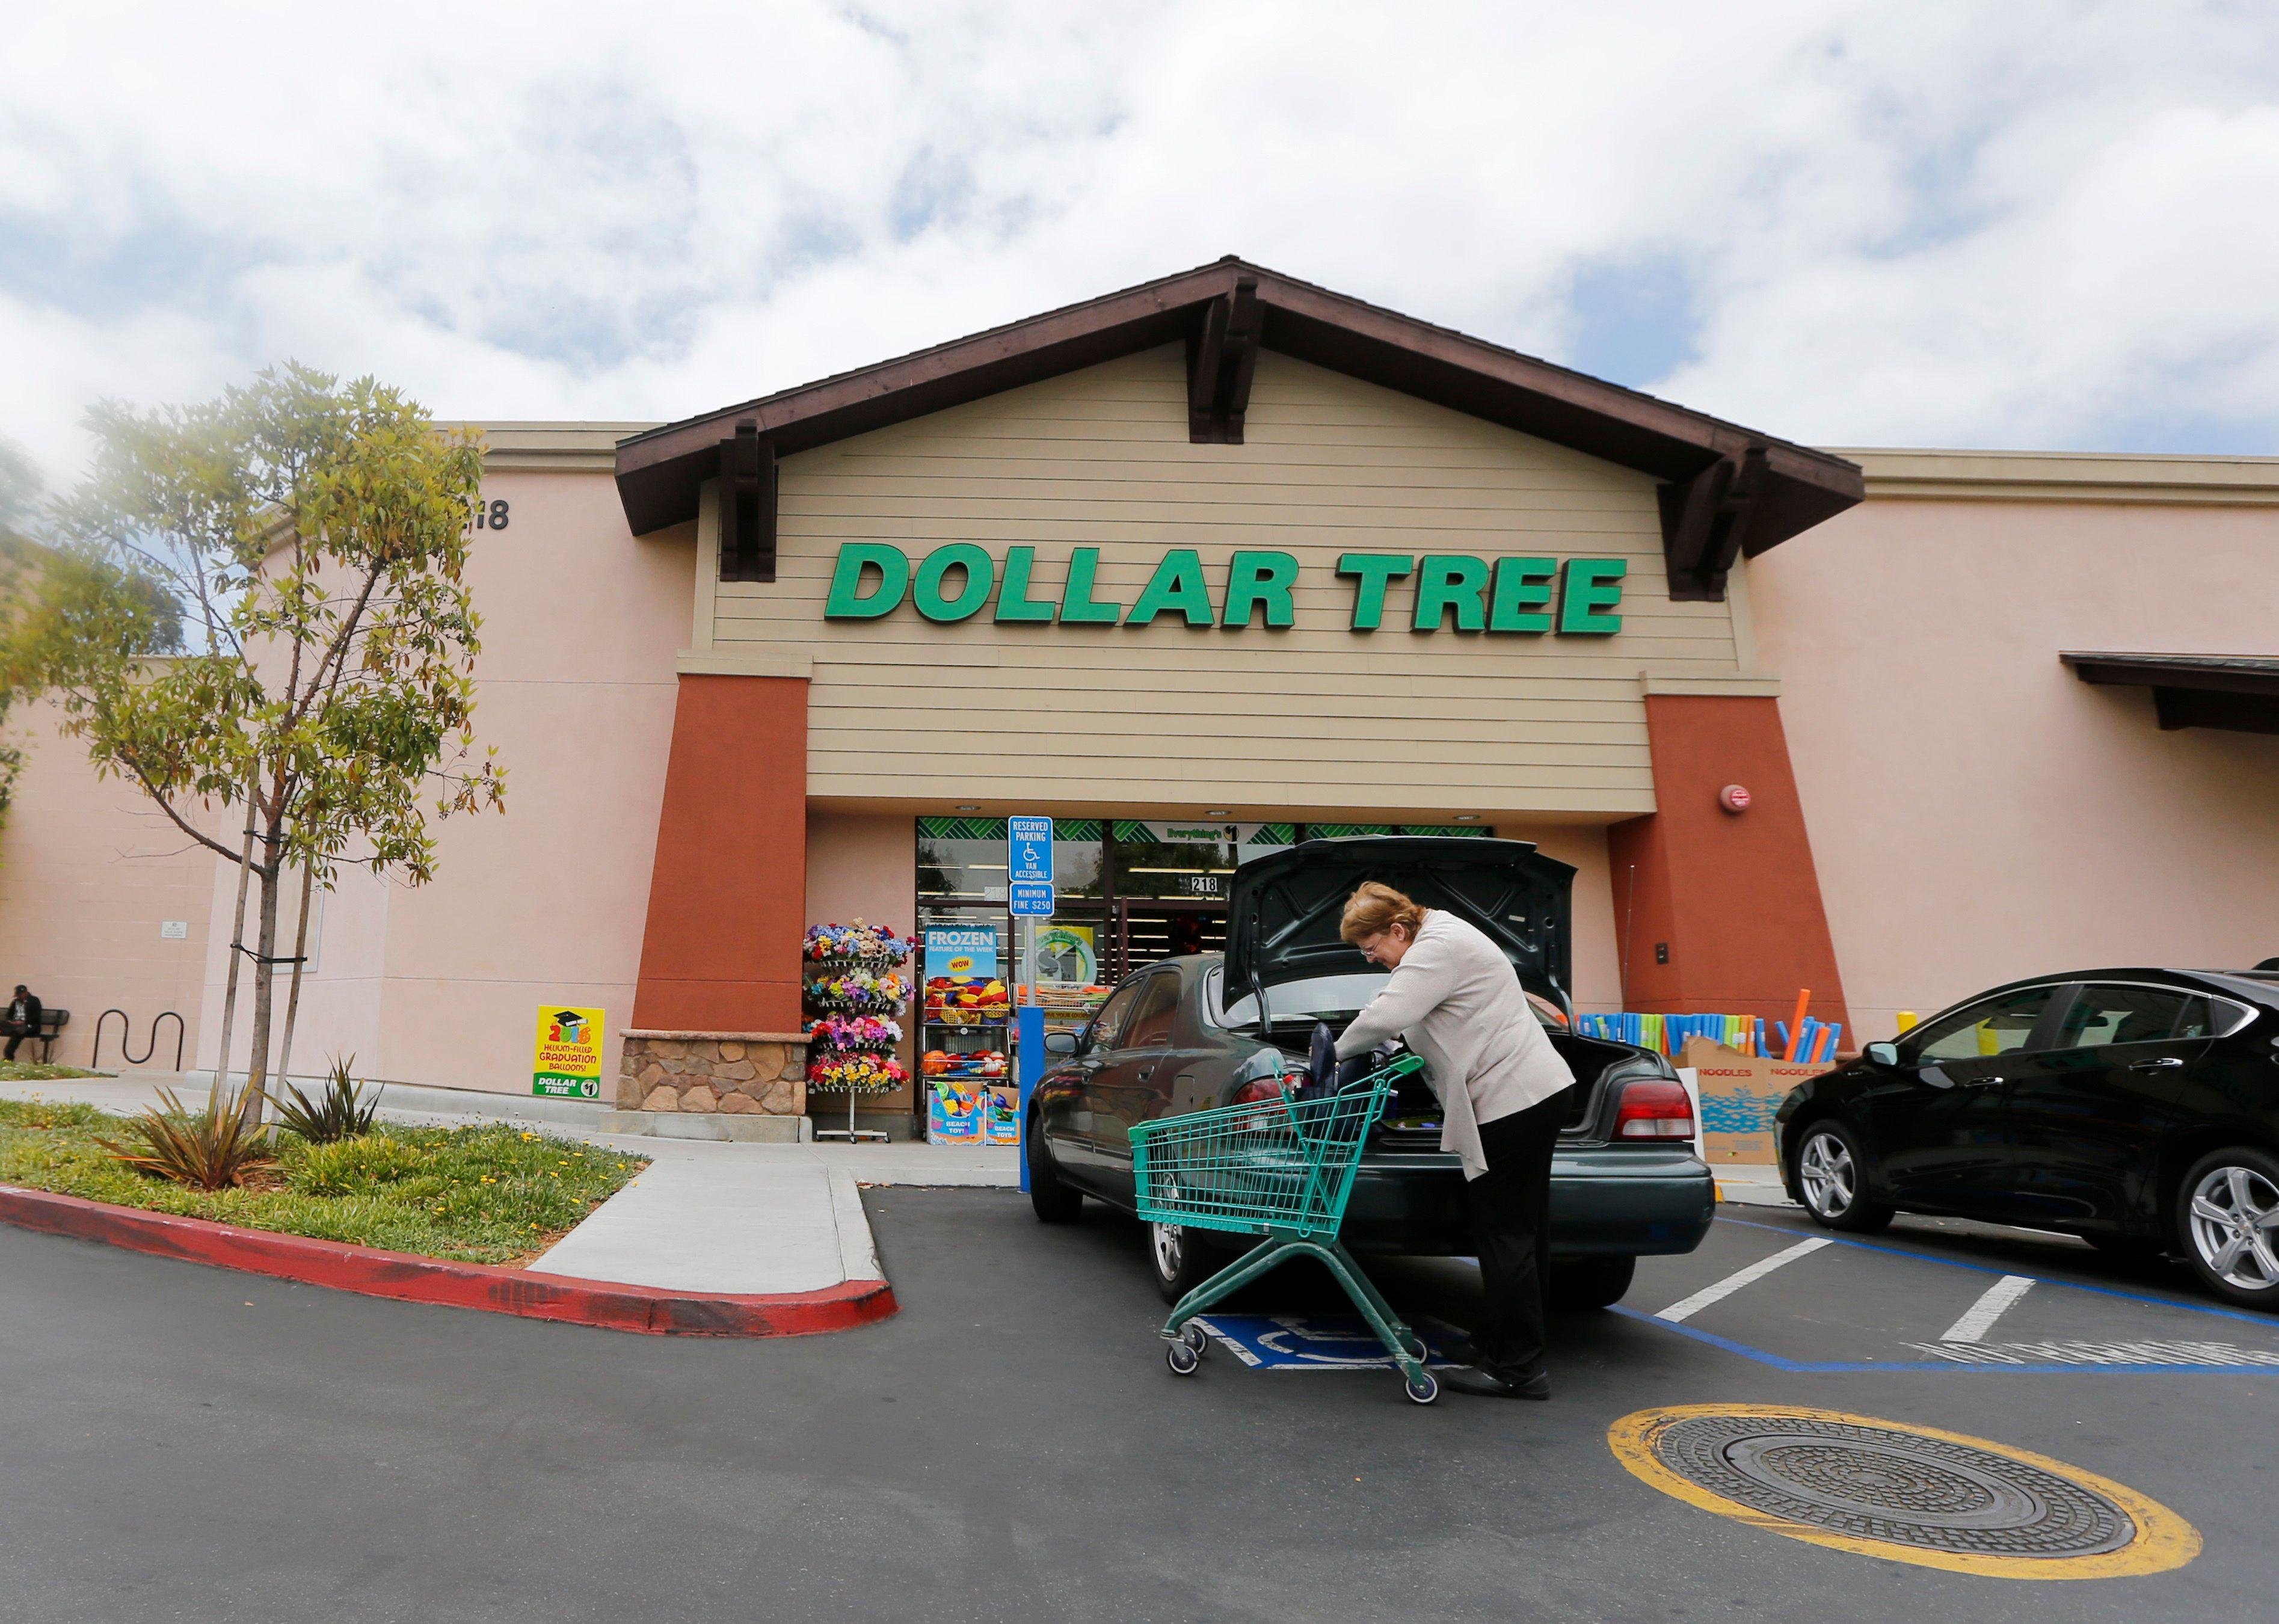 Why Dollar Tree should be ashamed of itself for colossal